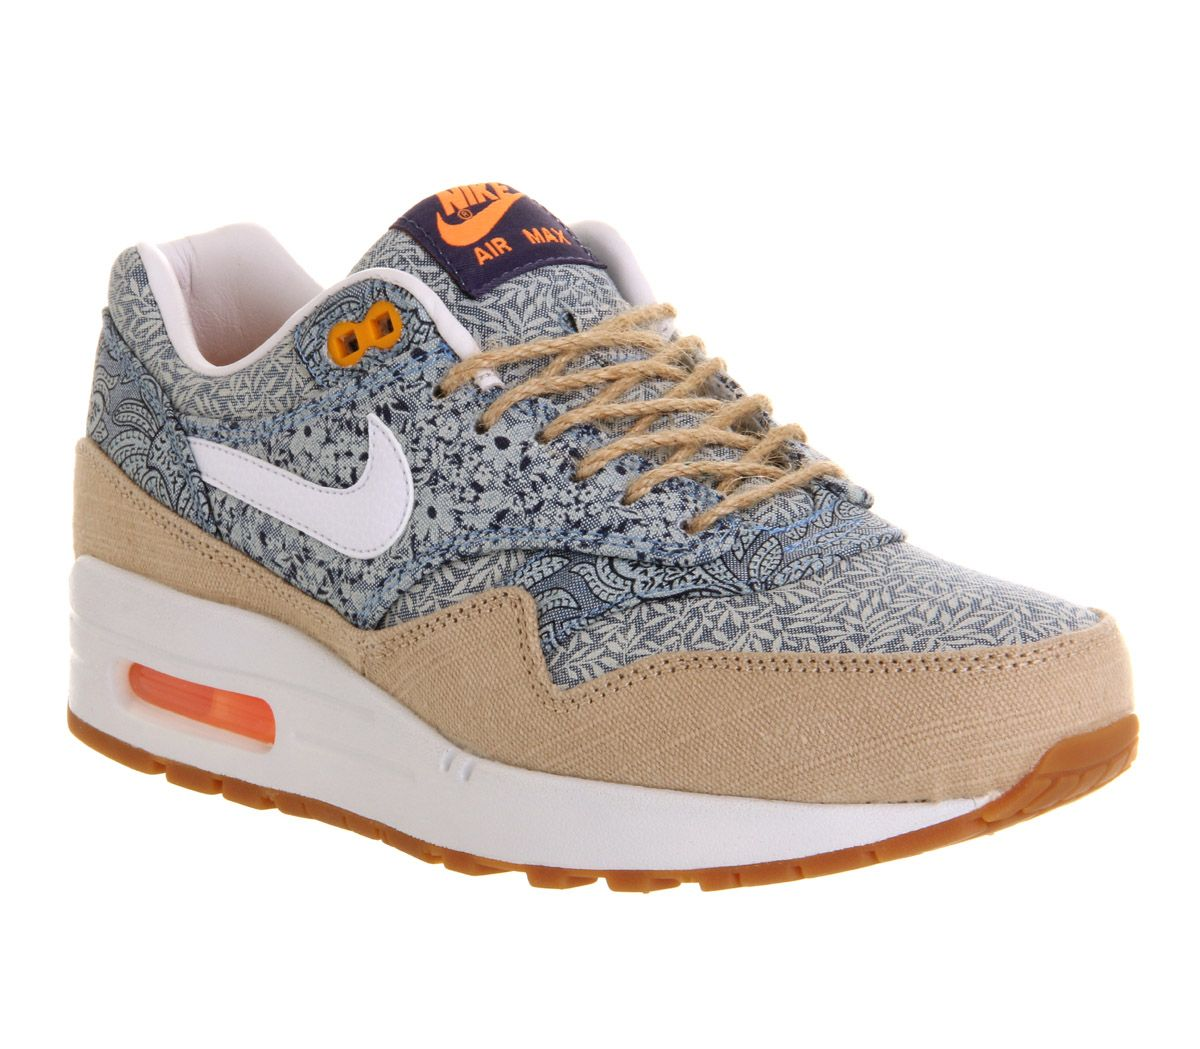 size 40 c03cc 8c623 Nike for liberty love Nike Air Max 1 (l) Blue Recall Linen Liberty - Hers  trainers